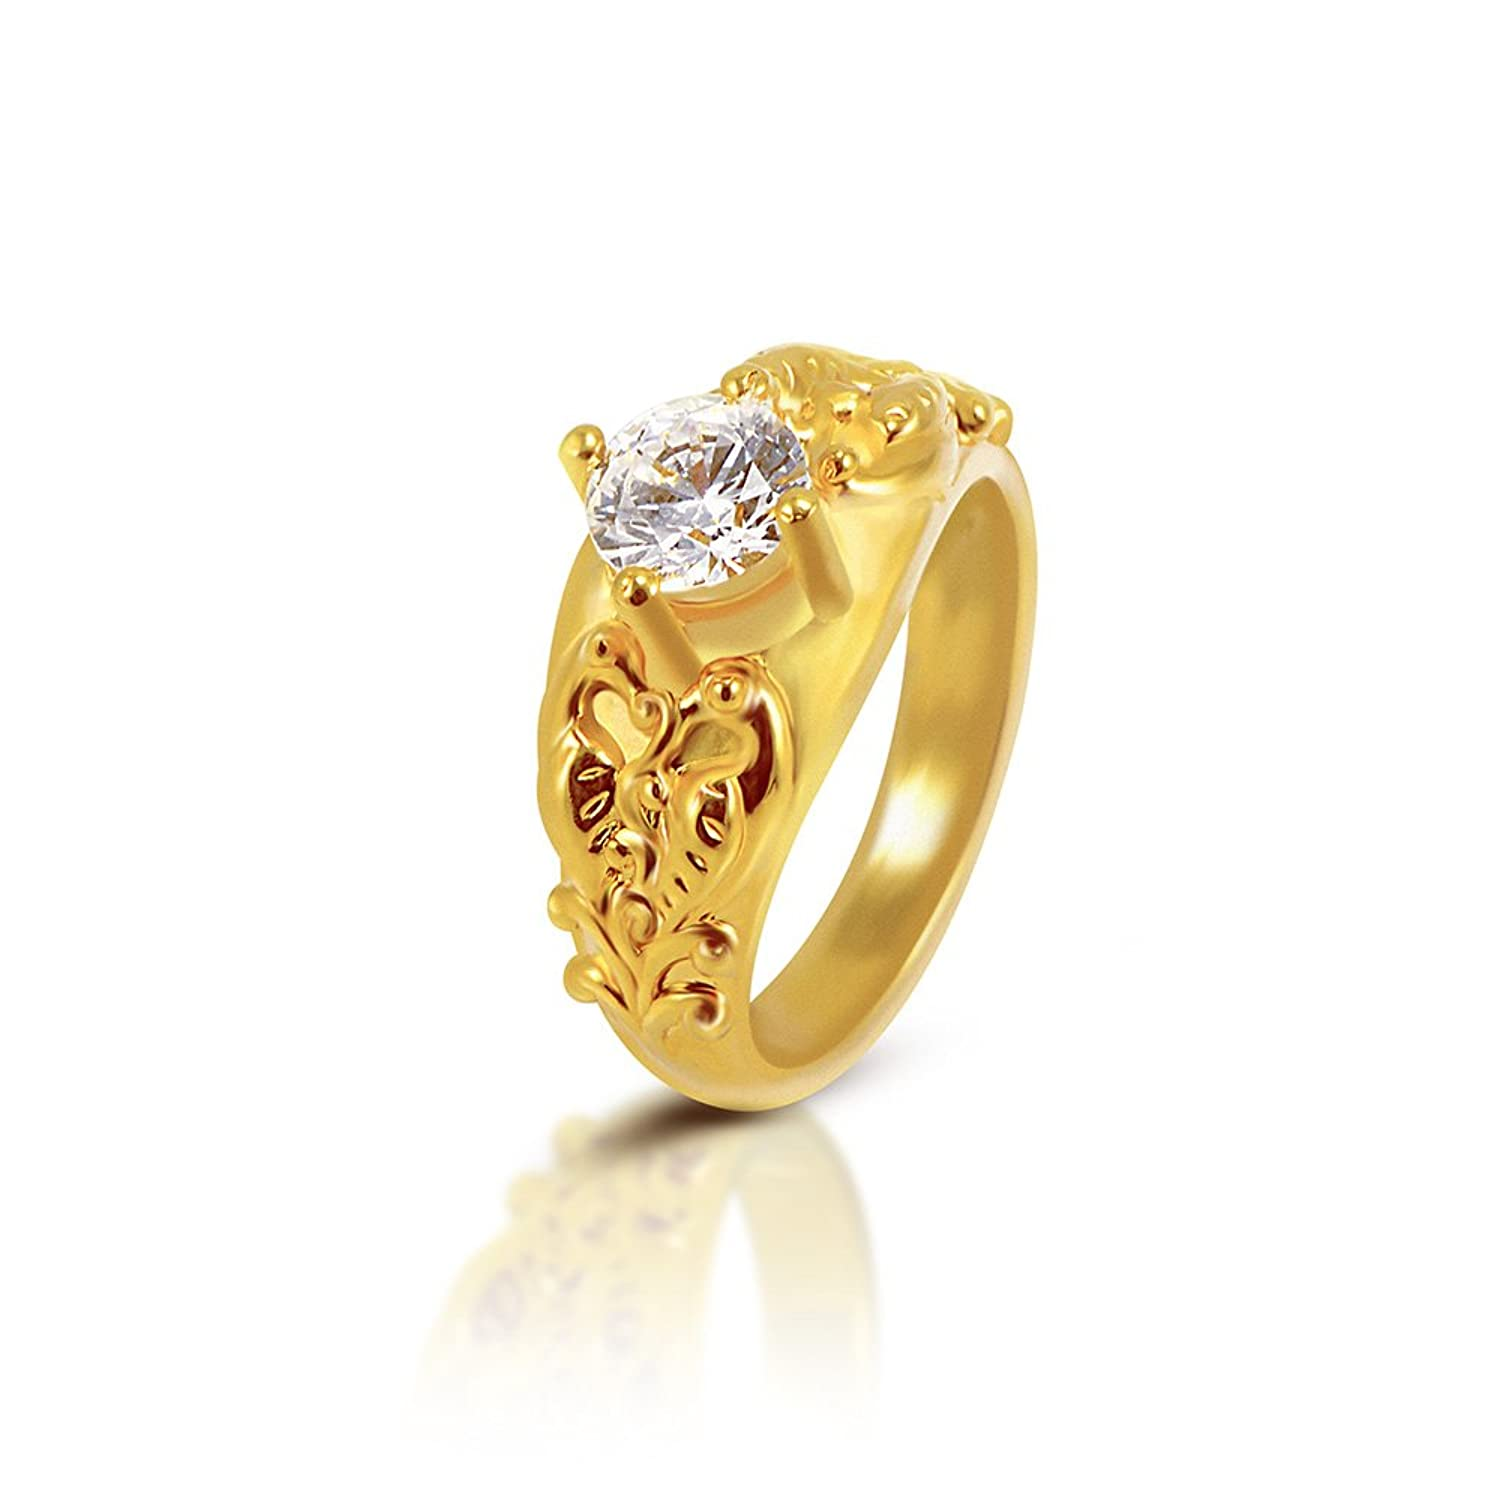 gadgil n low rings prices yellow buy store india jewellers at online engagement in amazon gold p ring jewellery dp